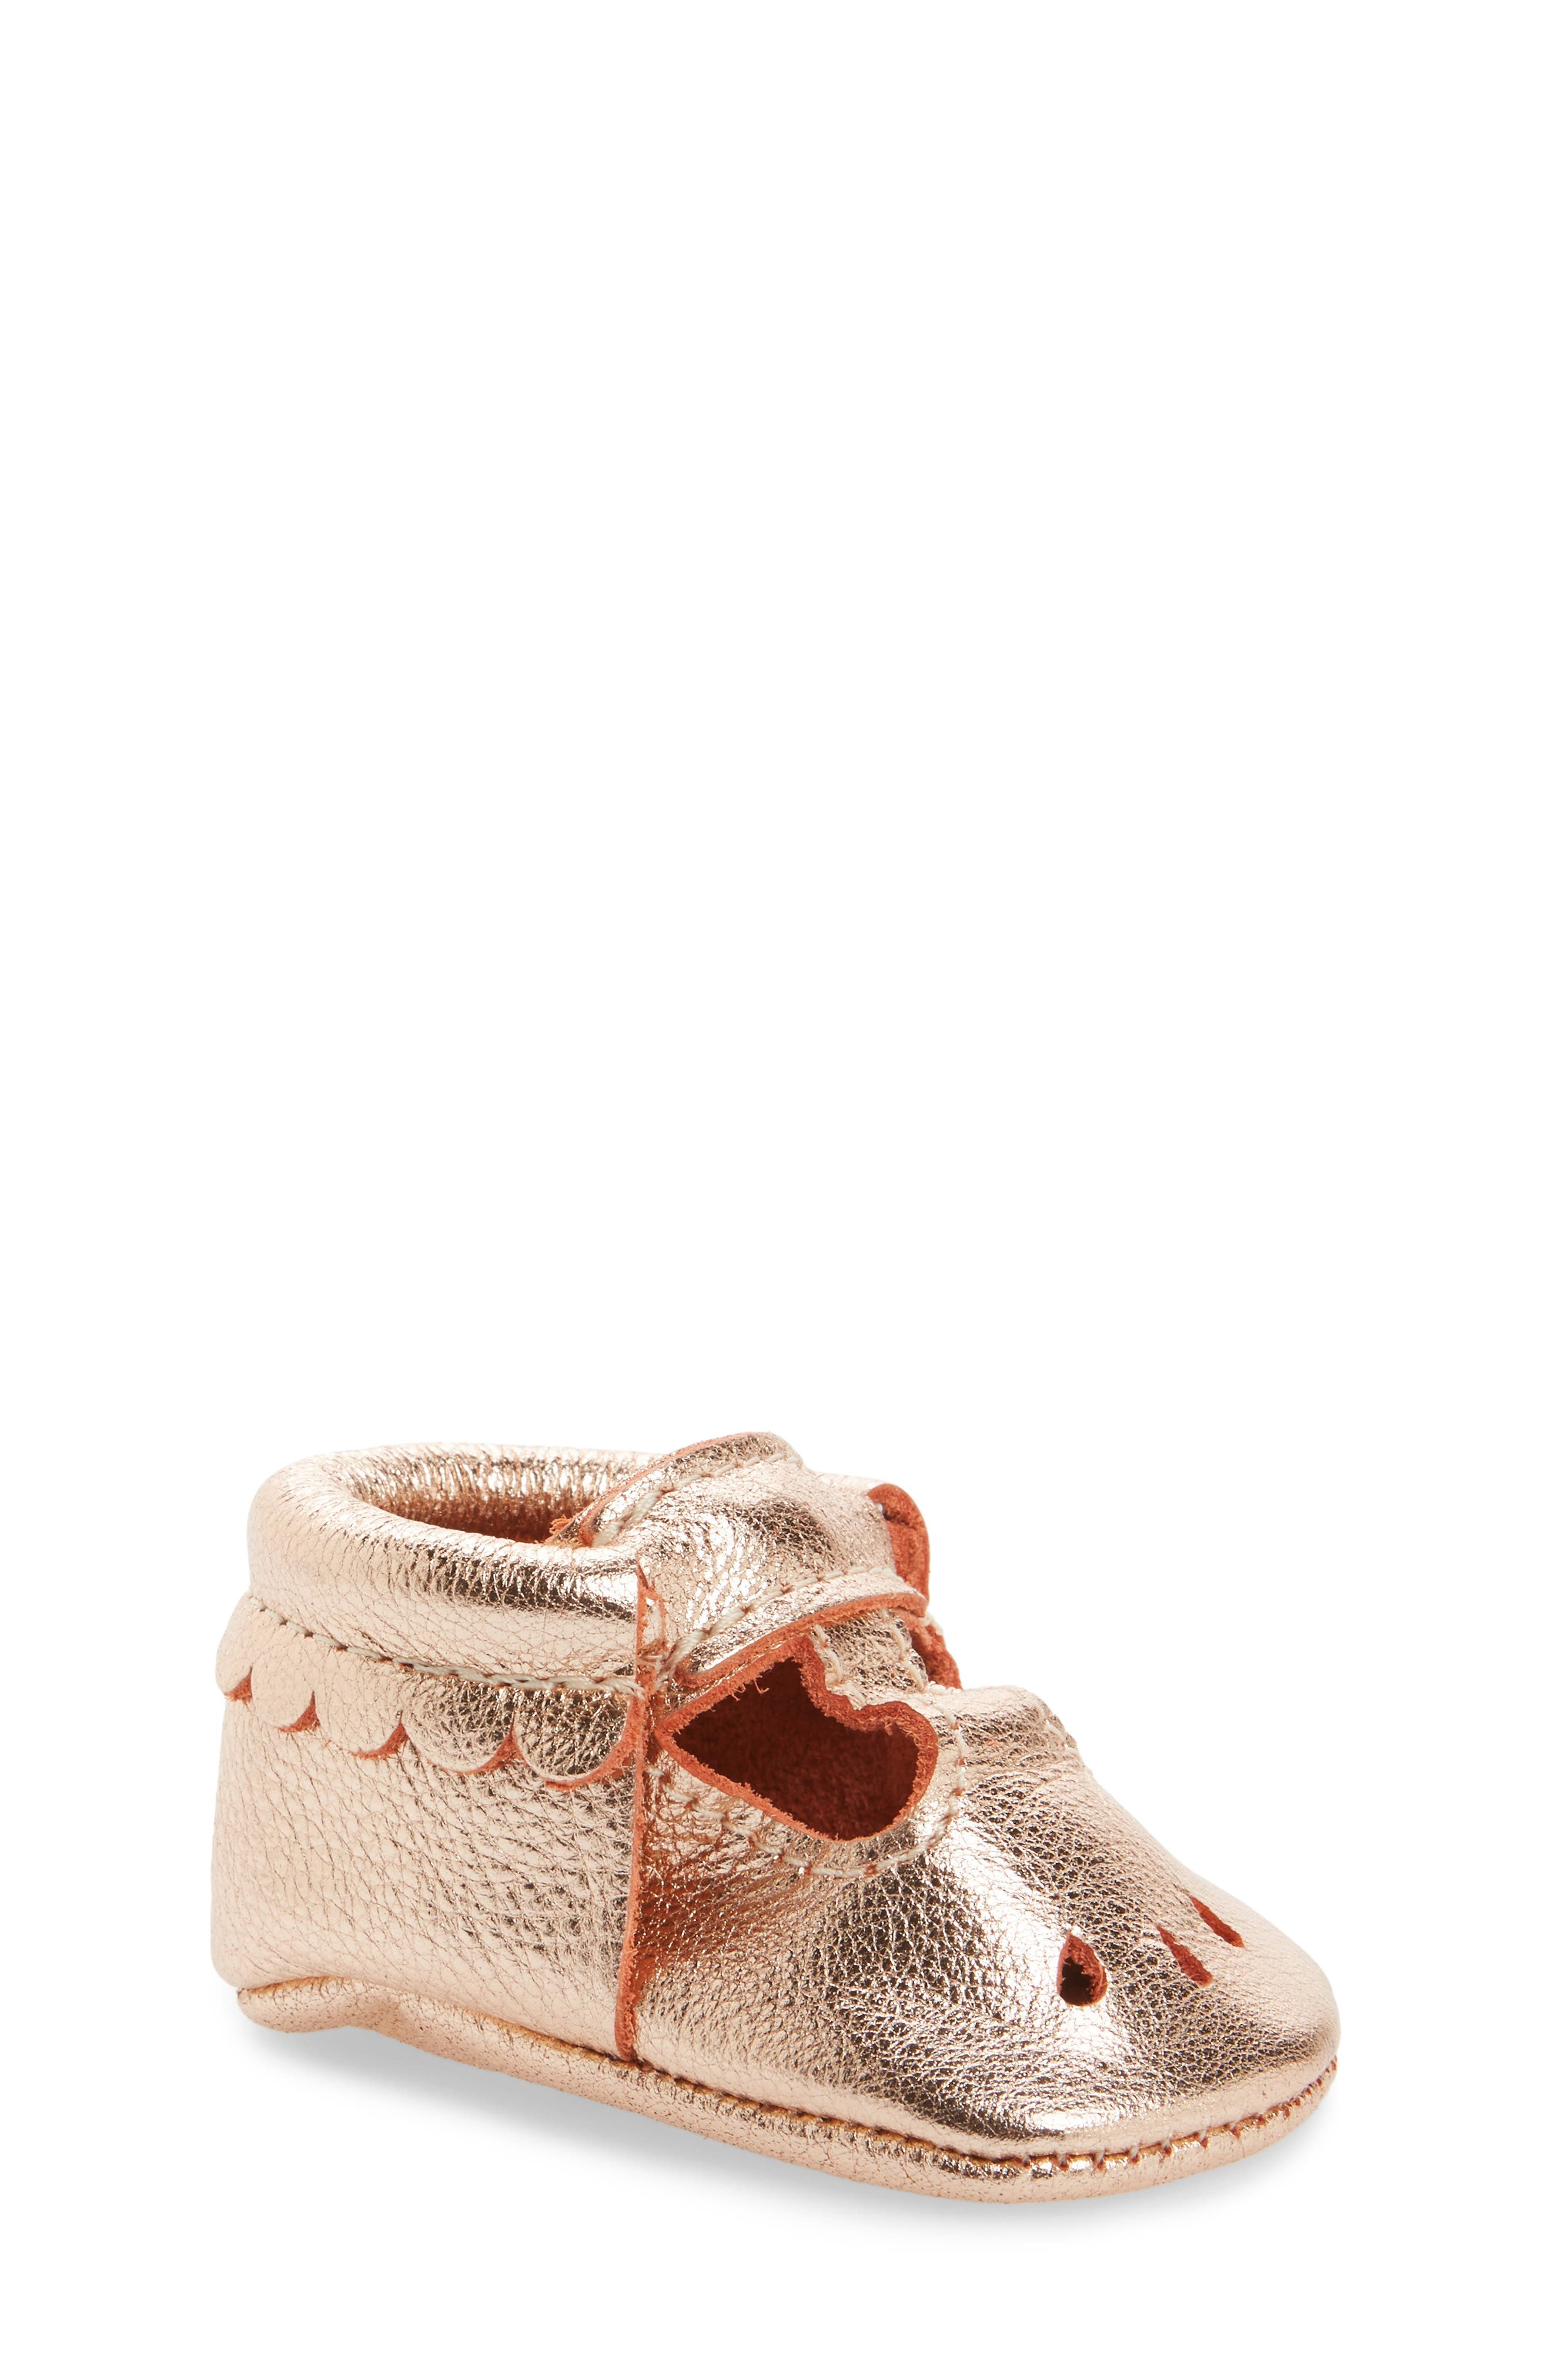 Perforated Mary Jane Moccasin,                         Main,                         color, 220